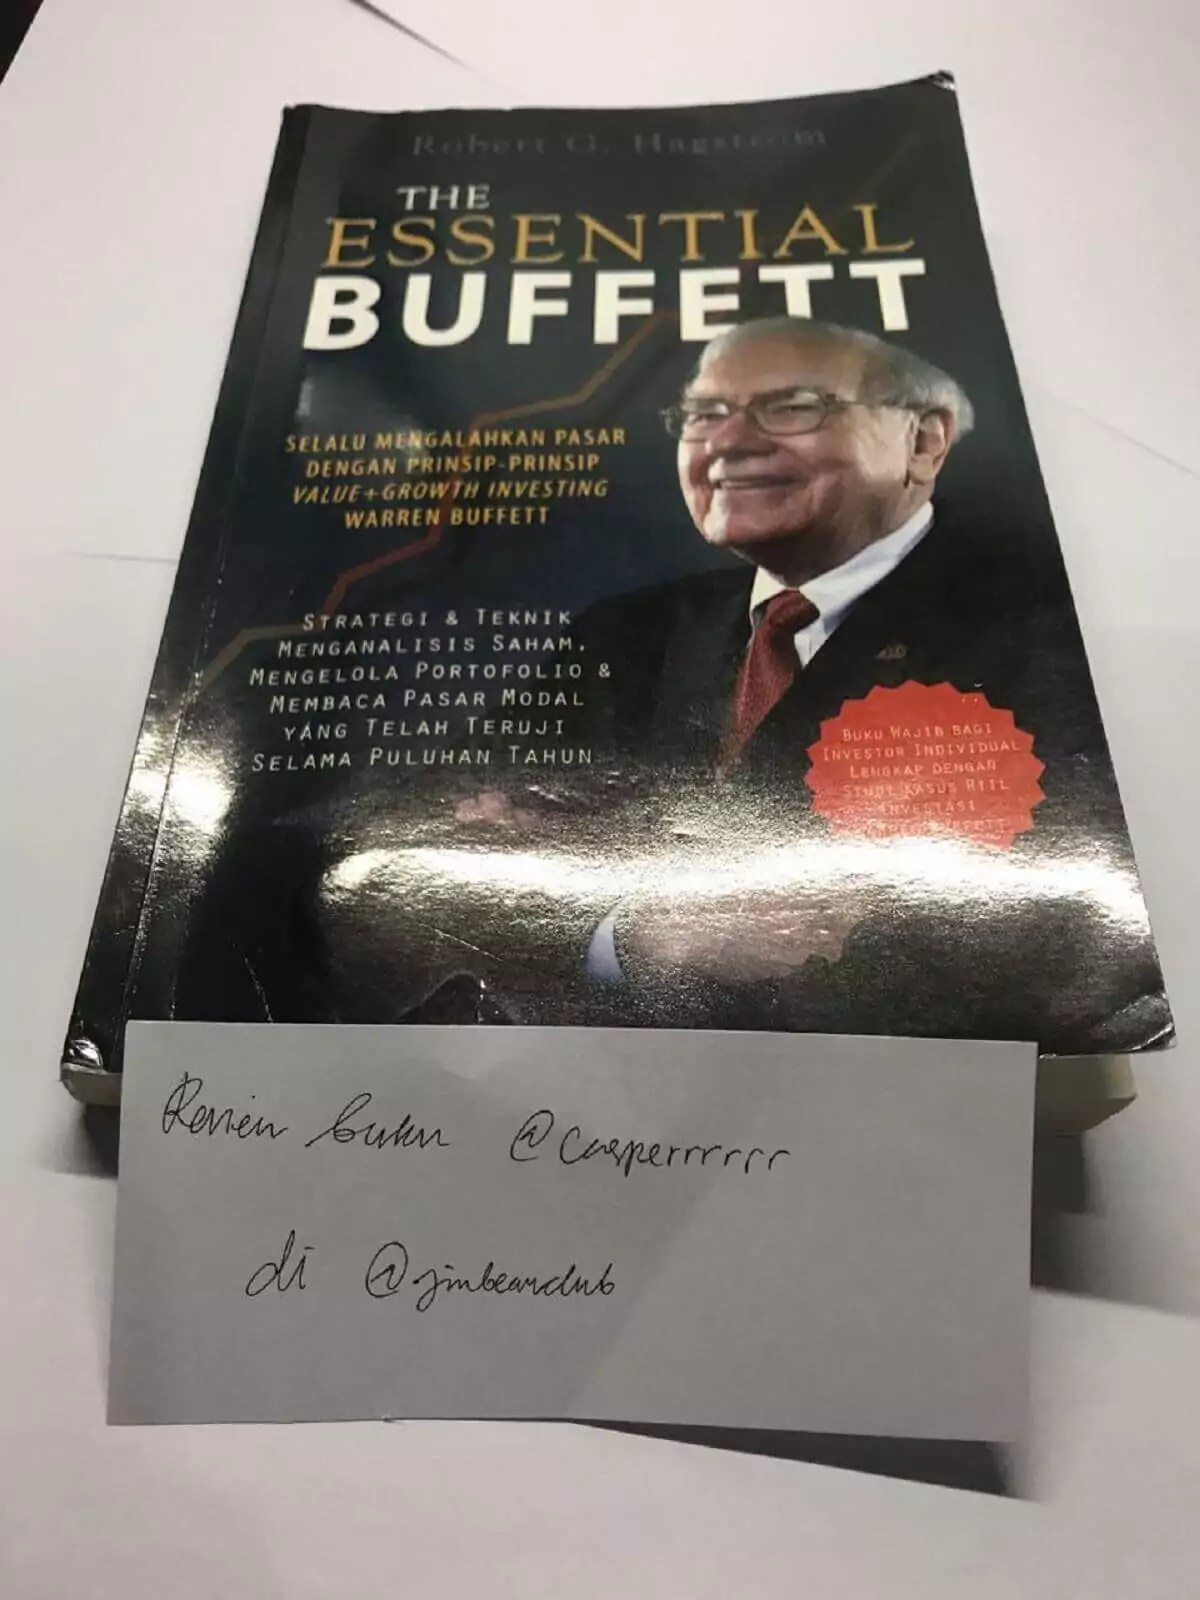 The Essential Buffett by Robert G. Hagstrom